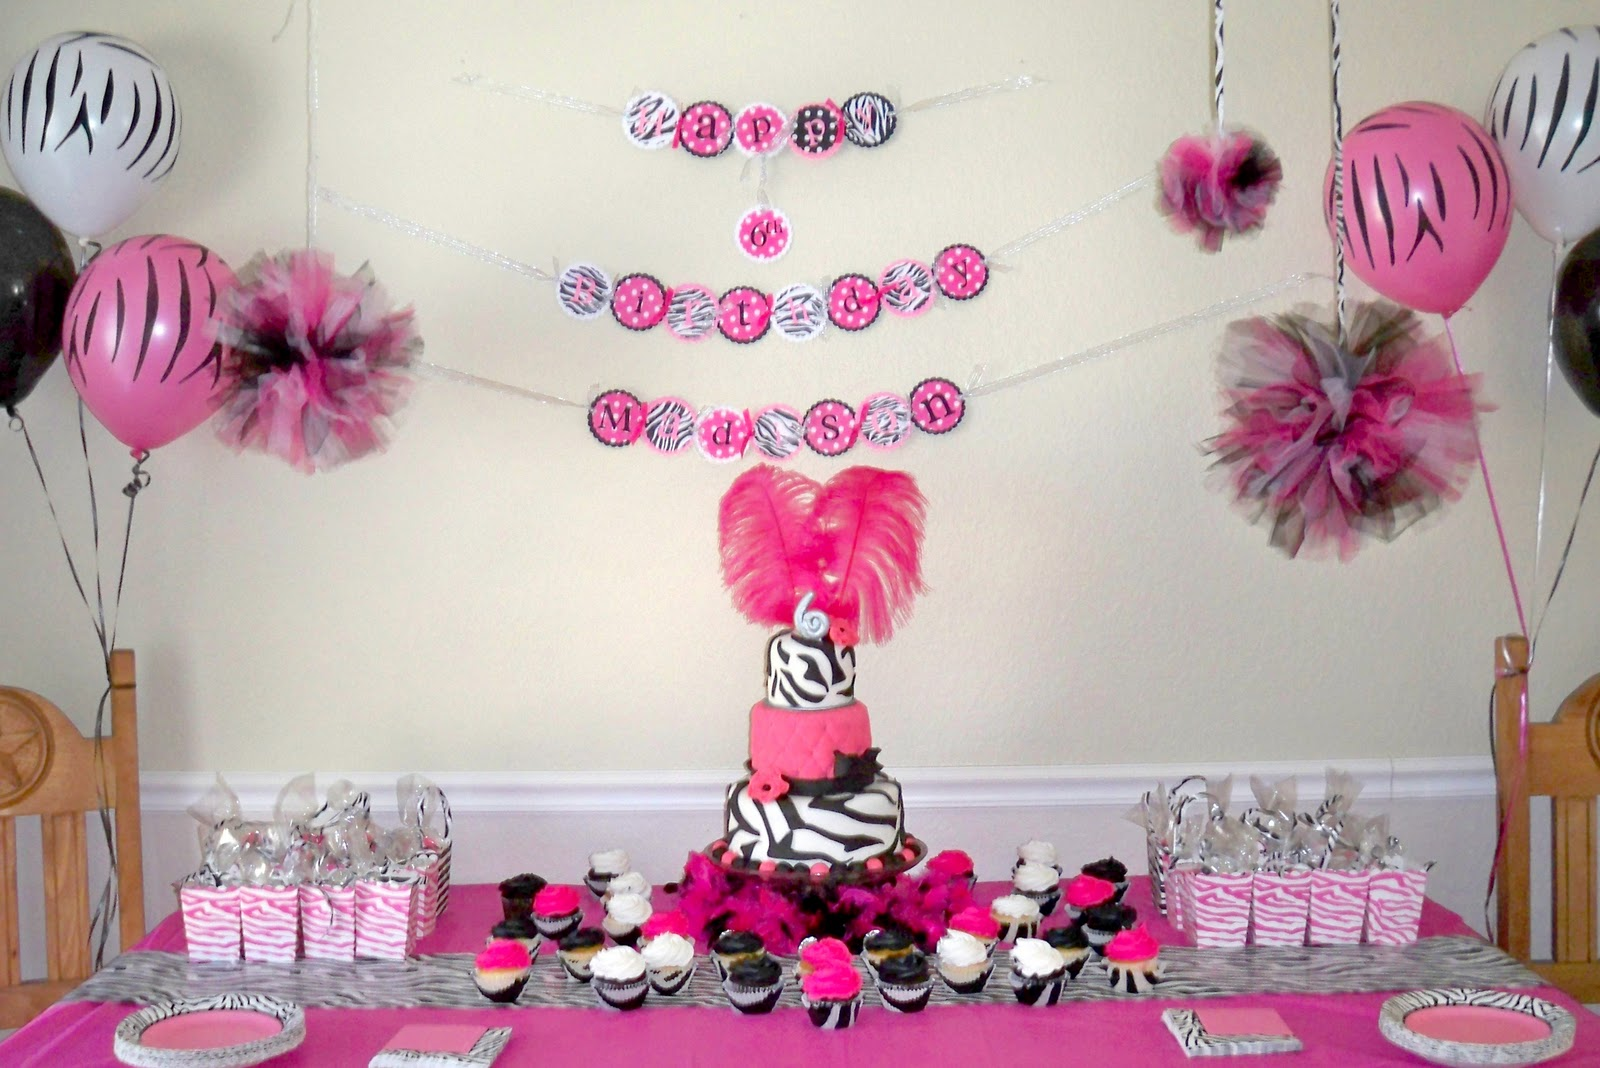 Pink Birthday Cake Decoration Ideas : My Creative Way: Hot Pink Zebra Diva Birthday Party Ideas